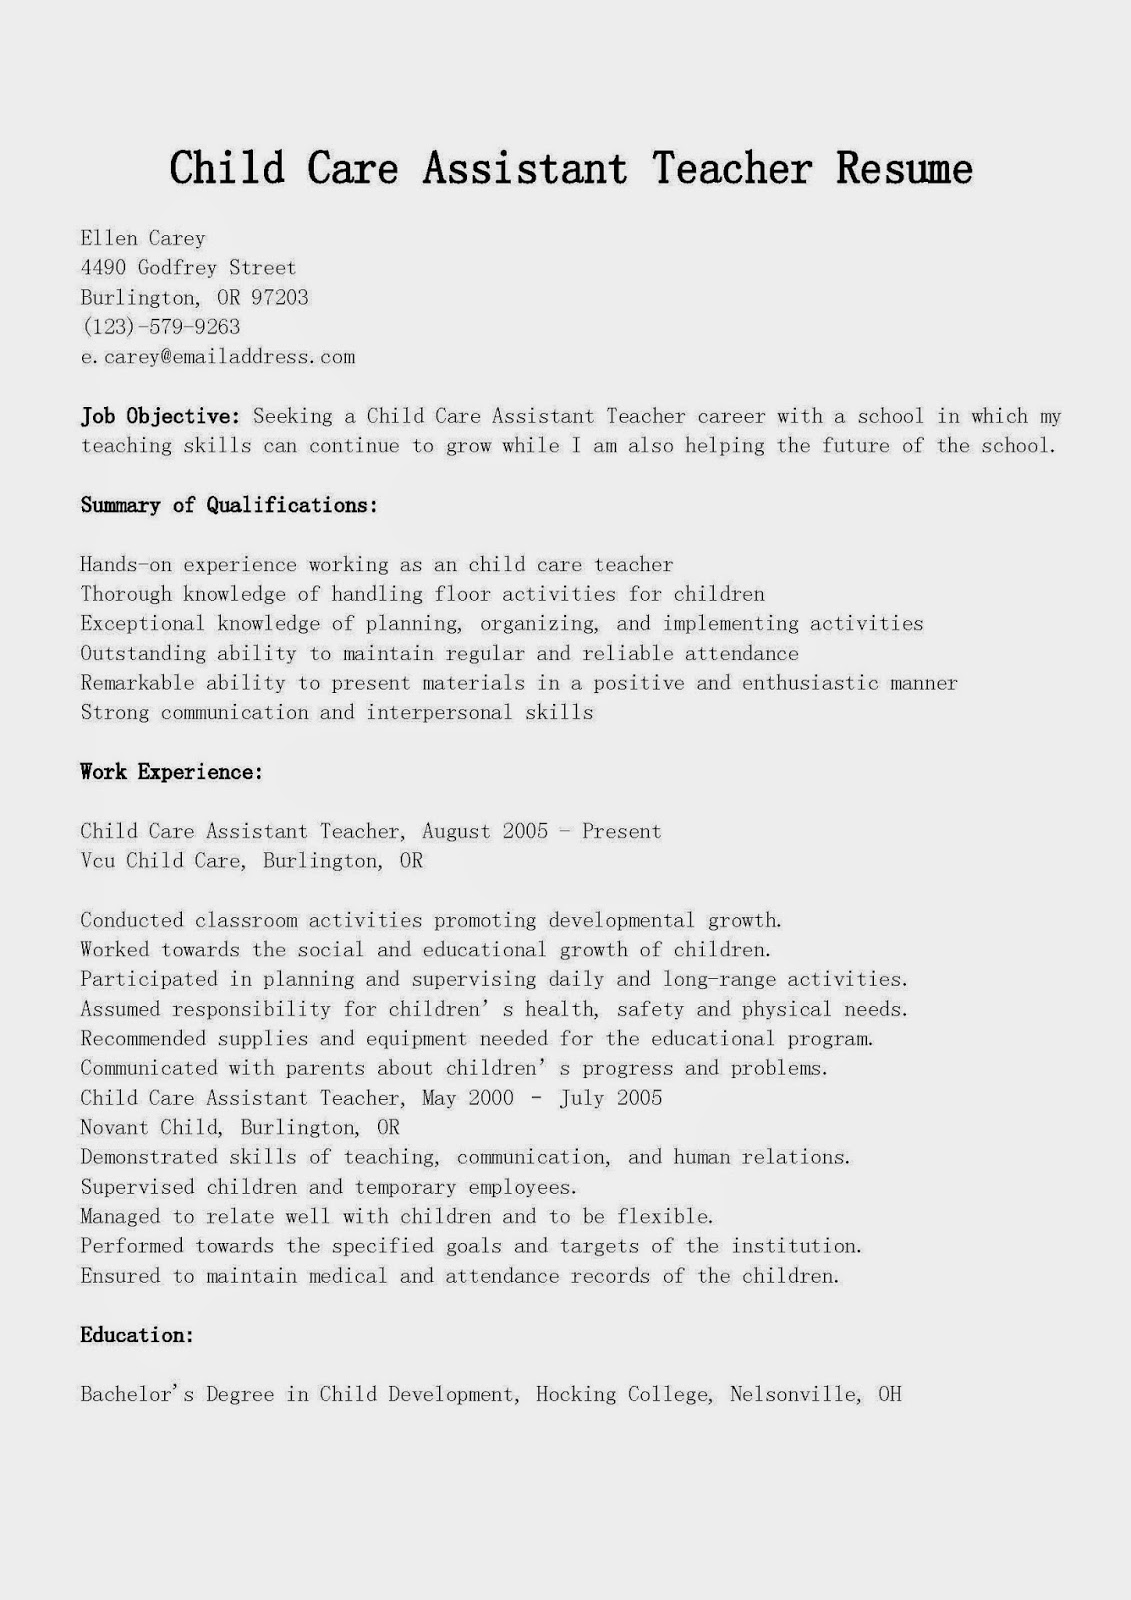 professional teacher resume writers resume writing resume writing articles template man get inspired imagerack us images about best education